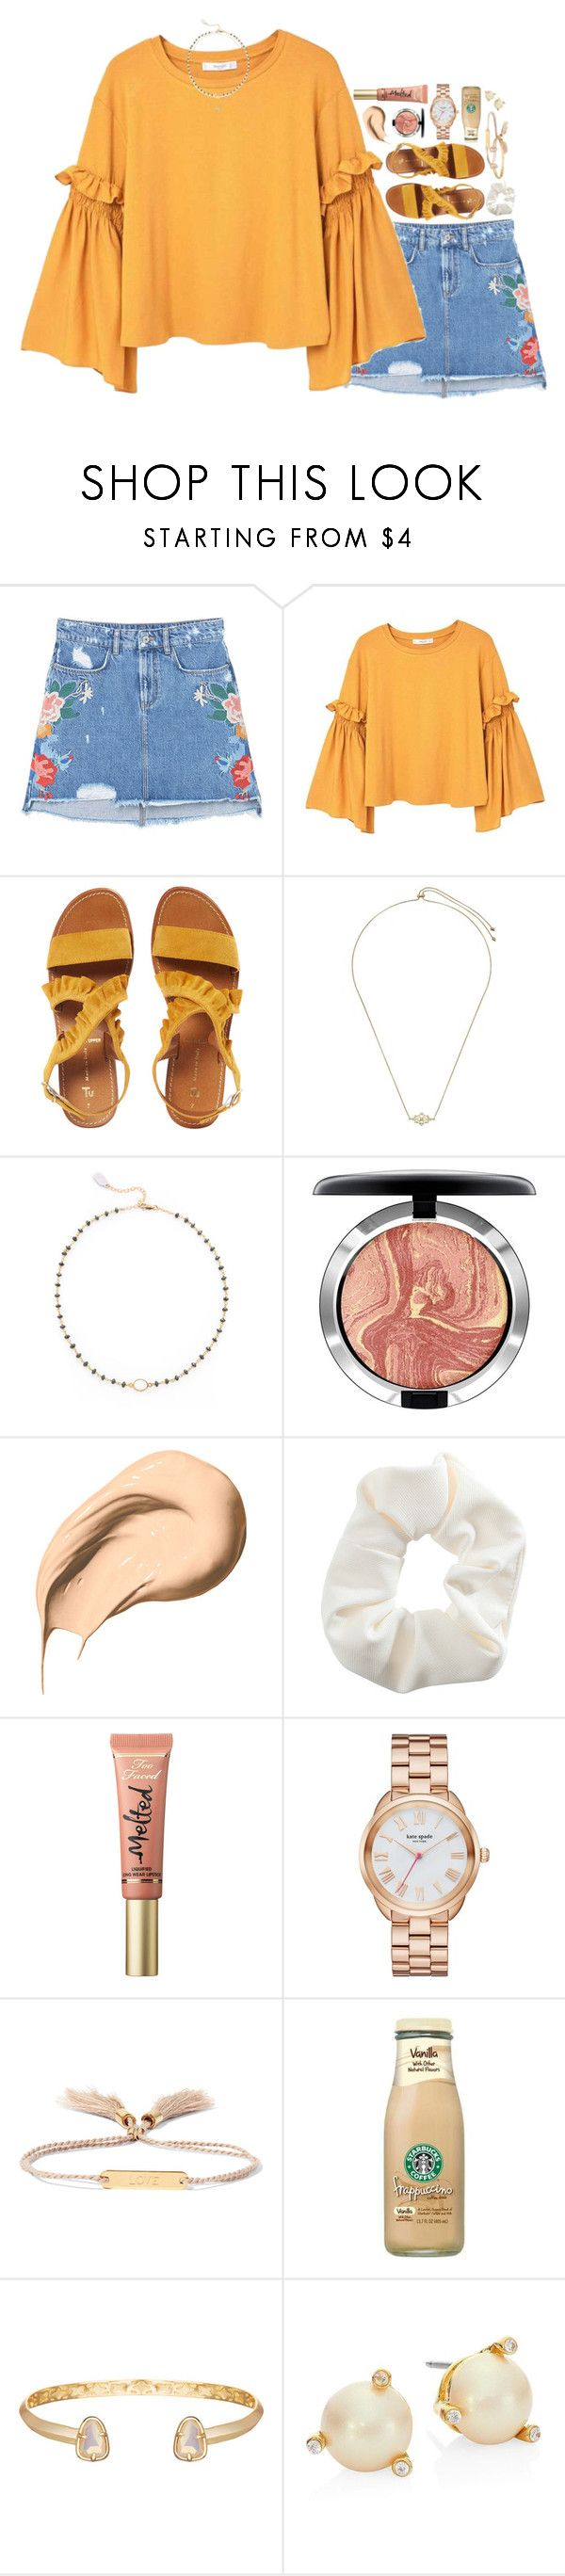 """""""everyone's getting asked to hoco and I'm just over here like """" by sdyerrtx ❤ liked on Polyvore featuring MANGO, Kendra Scott, Ela Rae, MAC Cosmetics, Bobbi Brown Cosmetics, Topshop, Too Faced Cosmetics, Kate Spade and Chloé"""